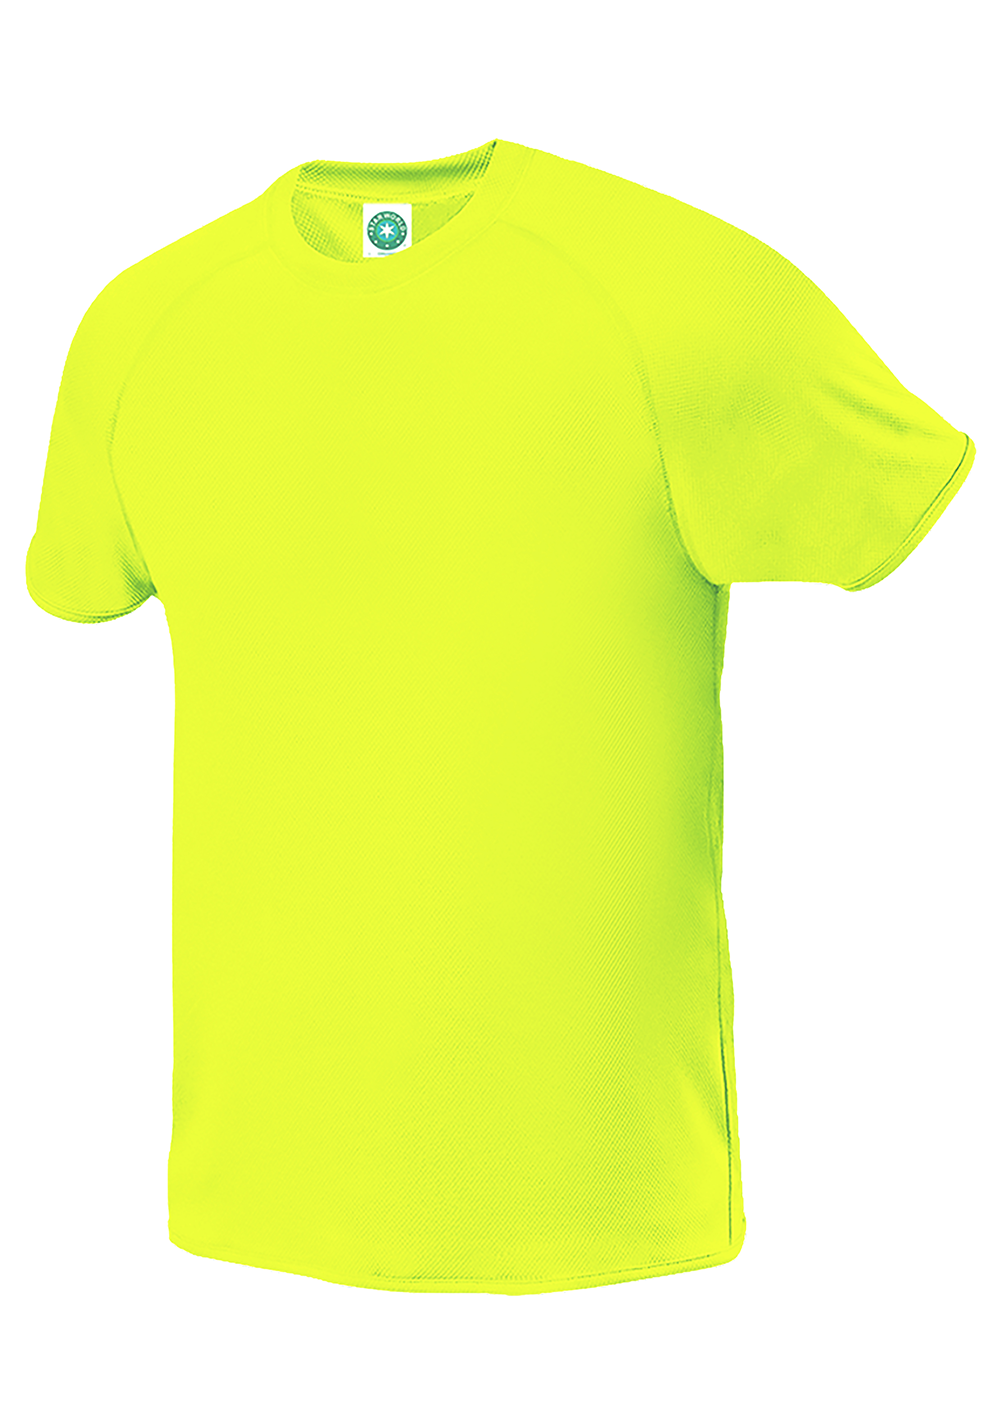 SW830-64-FlYellow.png